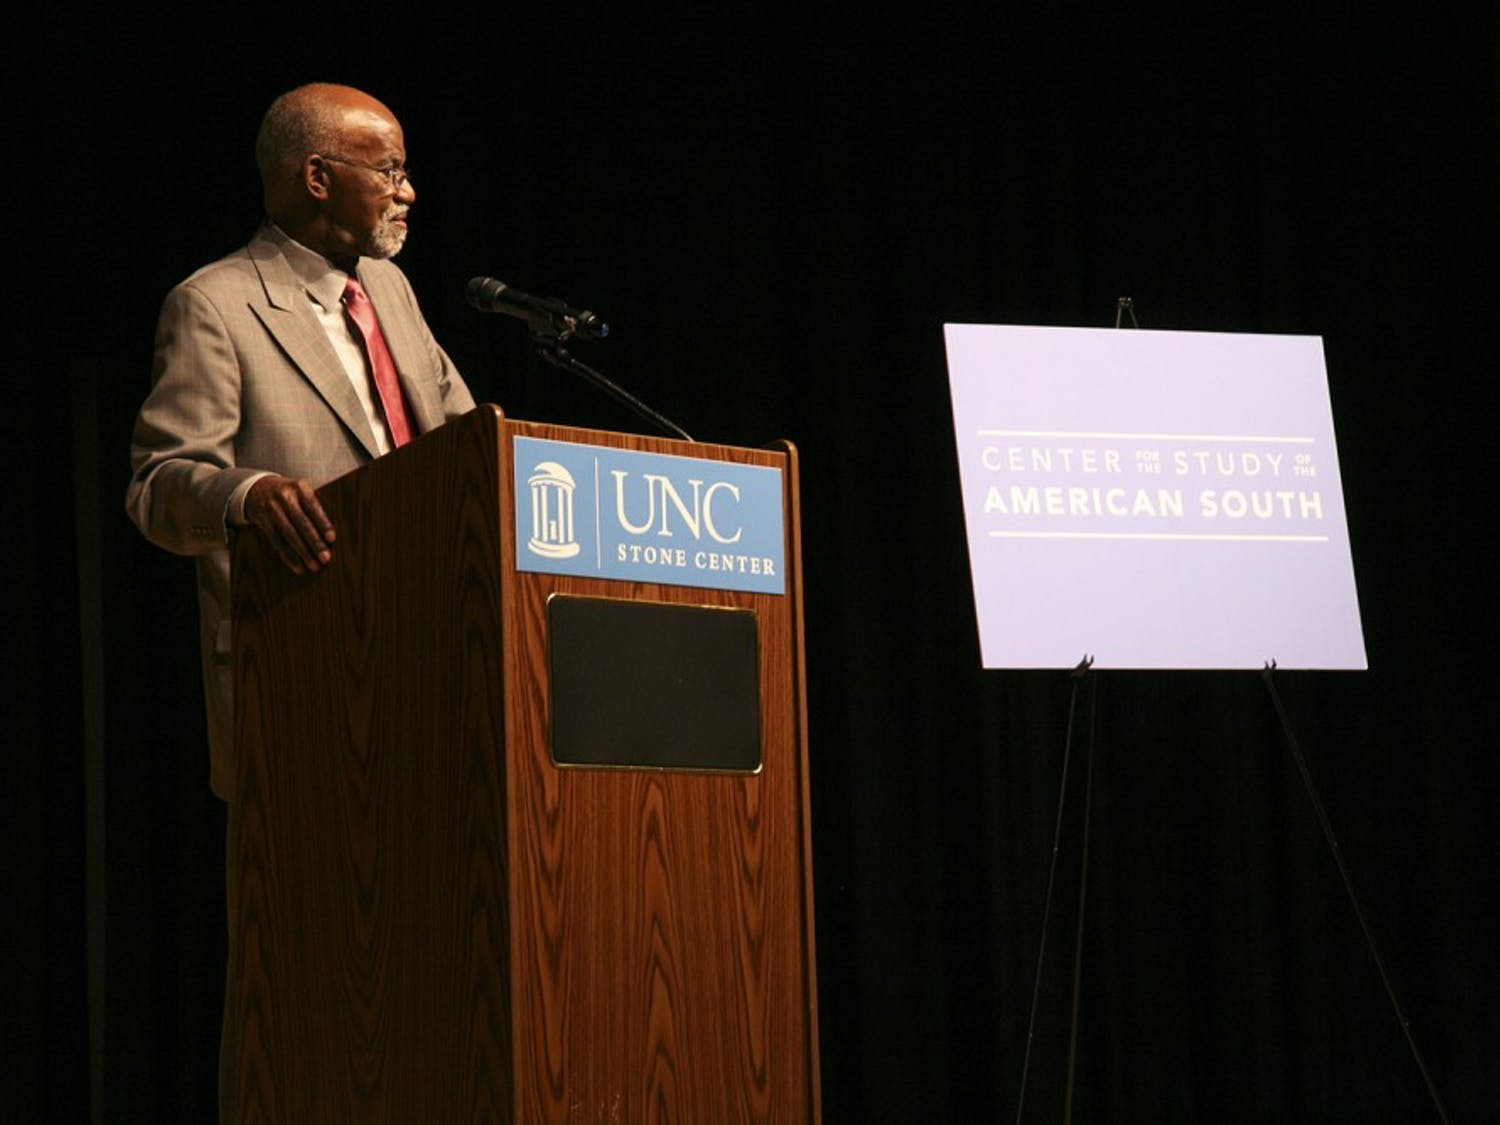 """James E. Ferguson II speaks to students, professors, and Carolina Alumni in the Stone Center theater on Tuesday night. Ferguson focuses his lecture on the Voting Rights Act and its implementation over the past fifty years. He also discusses the topic of race in the American south and how """"everything is different, but not much has changed."""""""